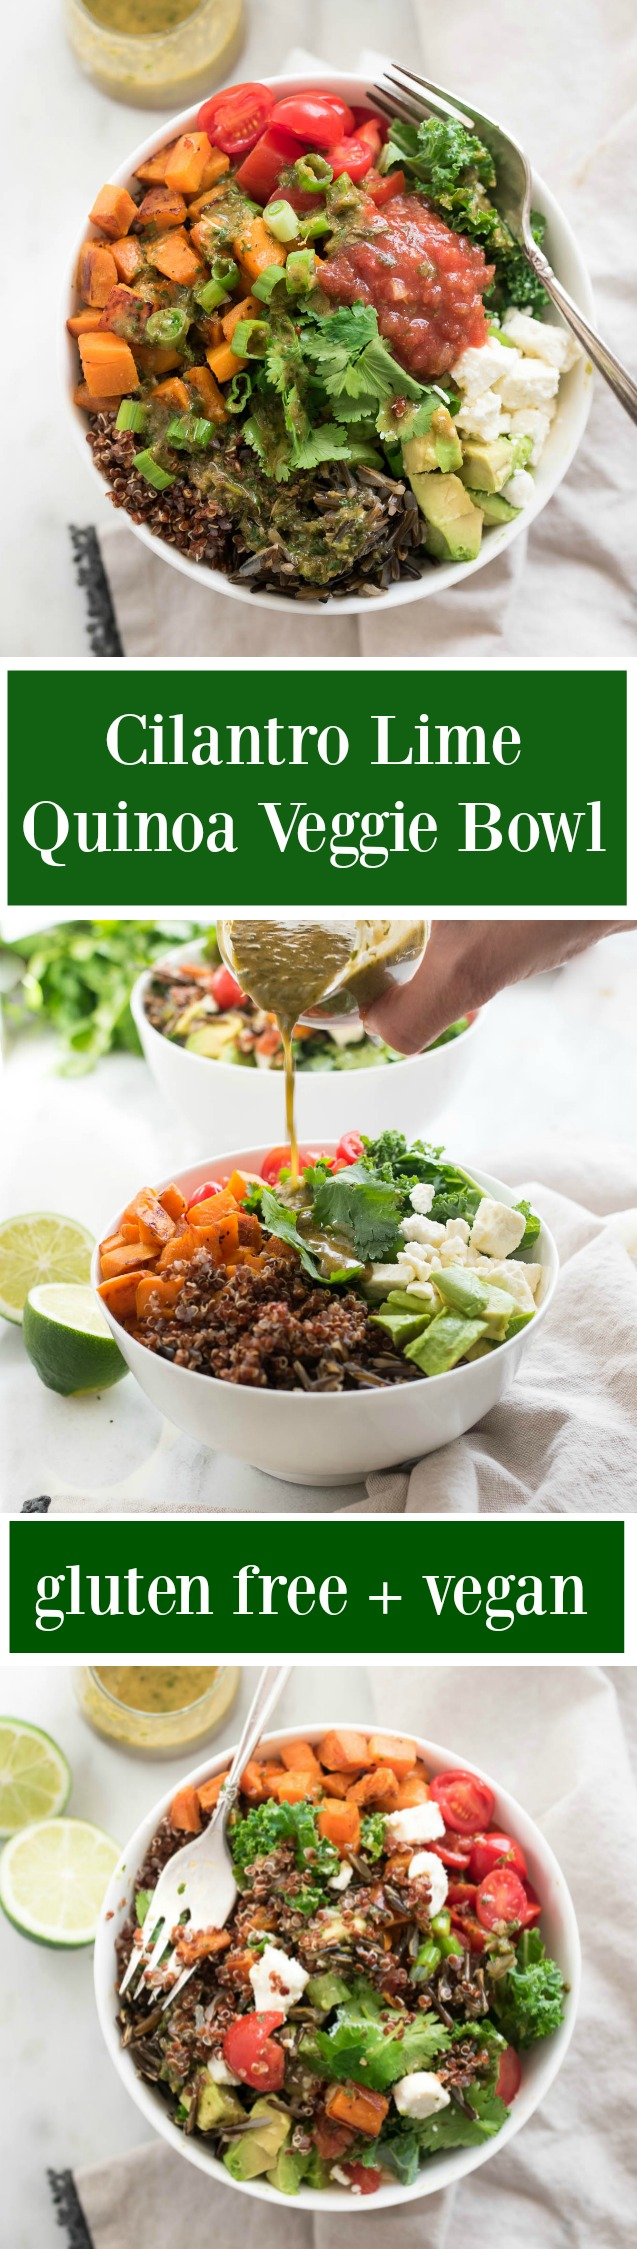 Cilantro Lime Quinoa Veggie Bowl is a protein and nutrient packed vegan and gluten free meal that works great for lunches throughout the week!